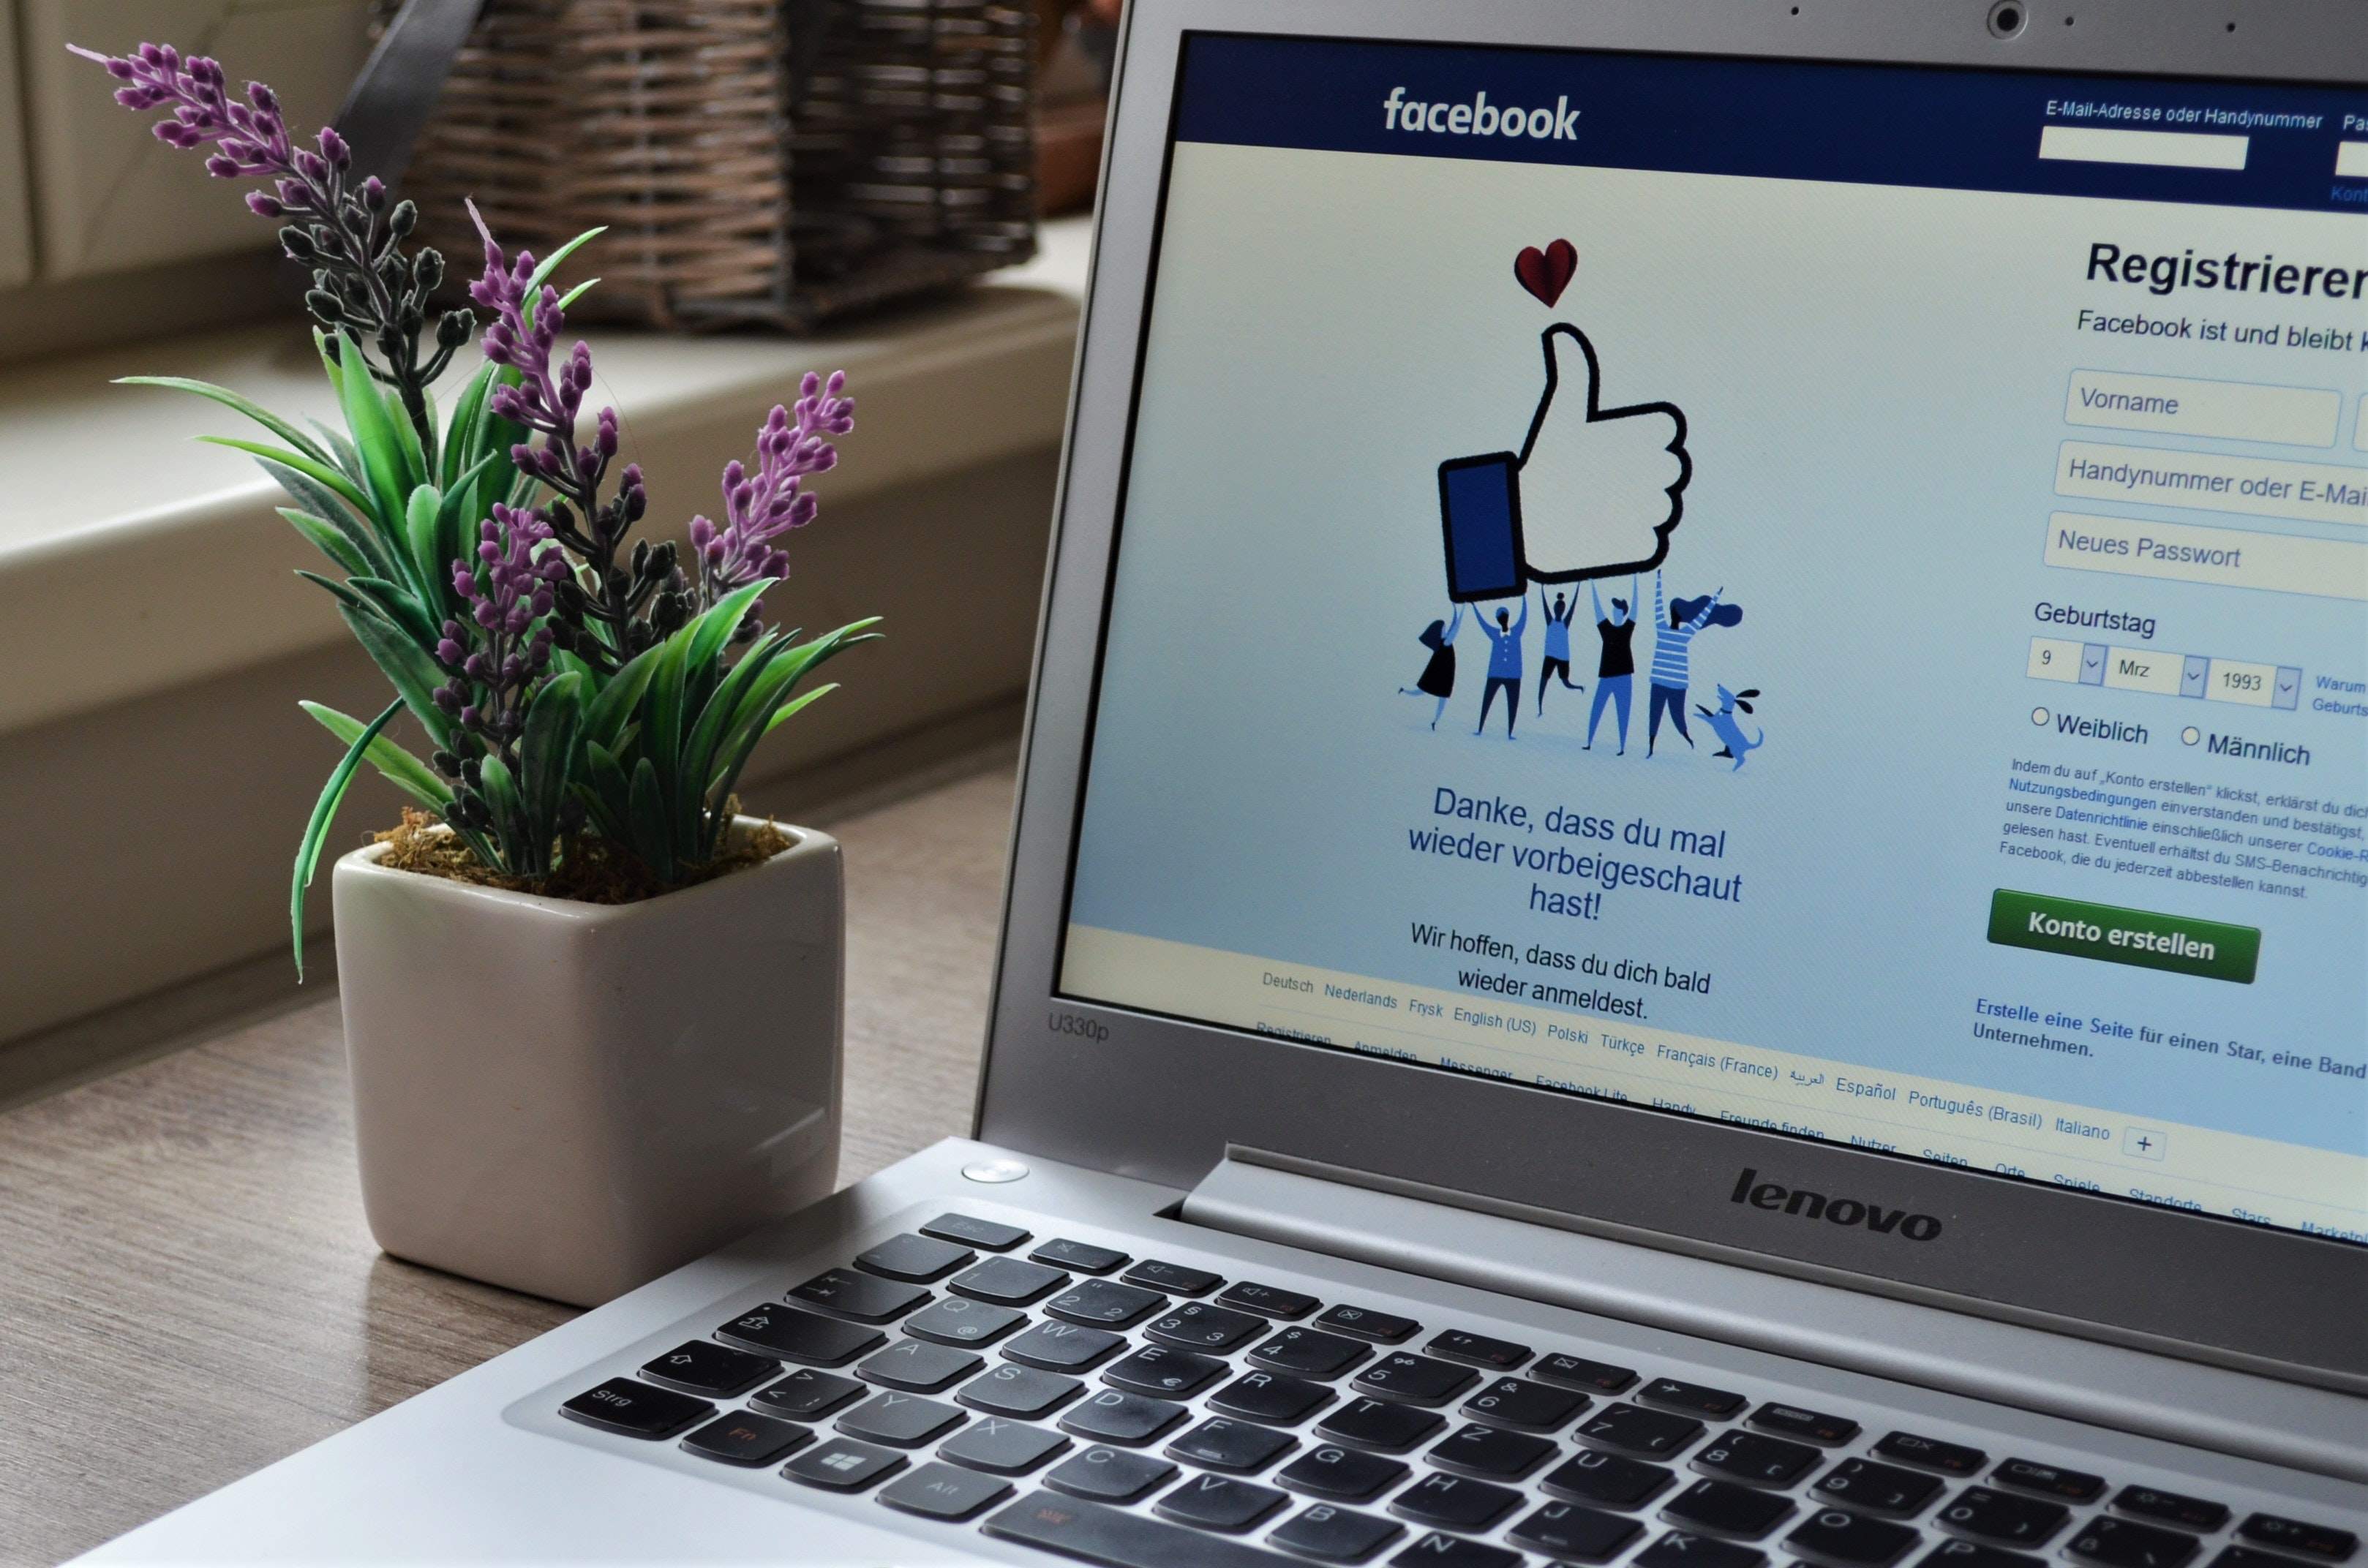 A Lenovo laptop with Facebook's login page open on a desk next to a plant.